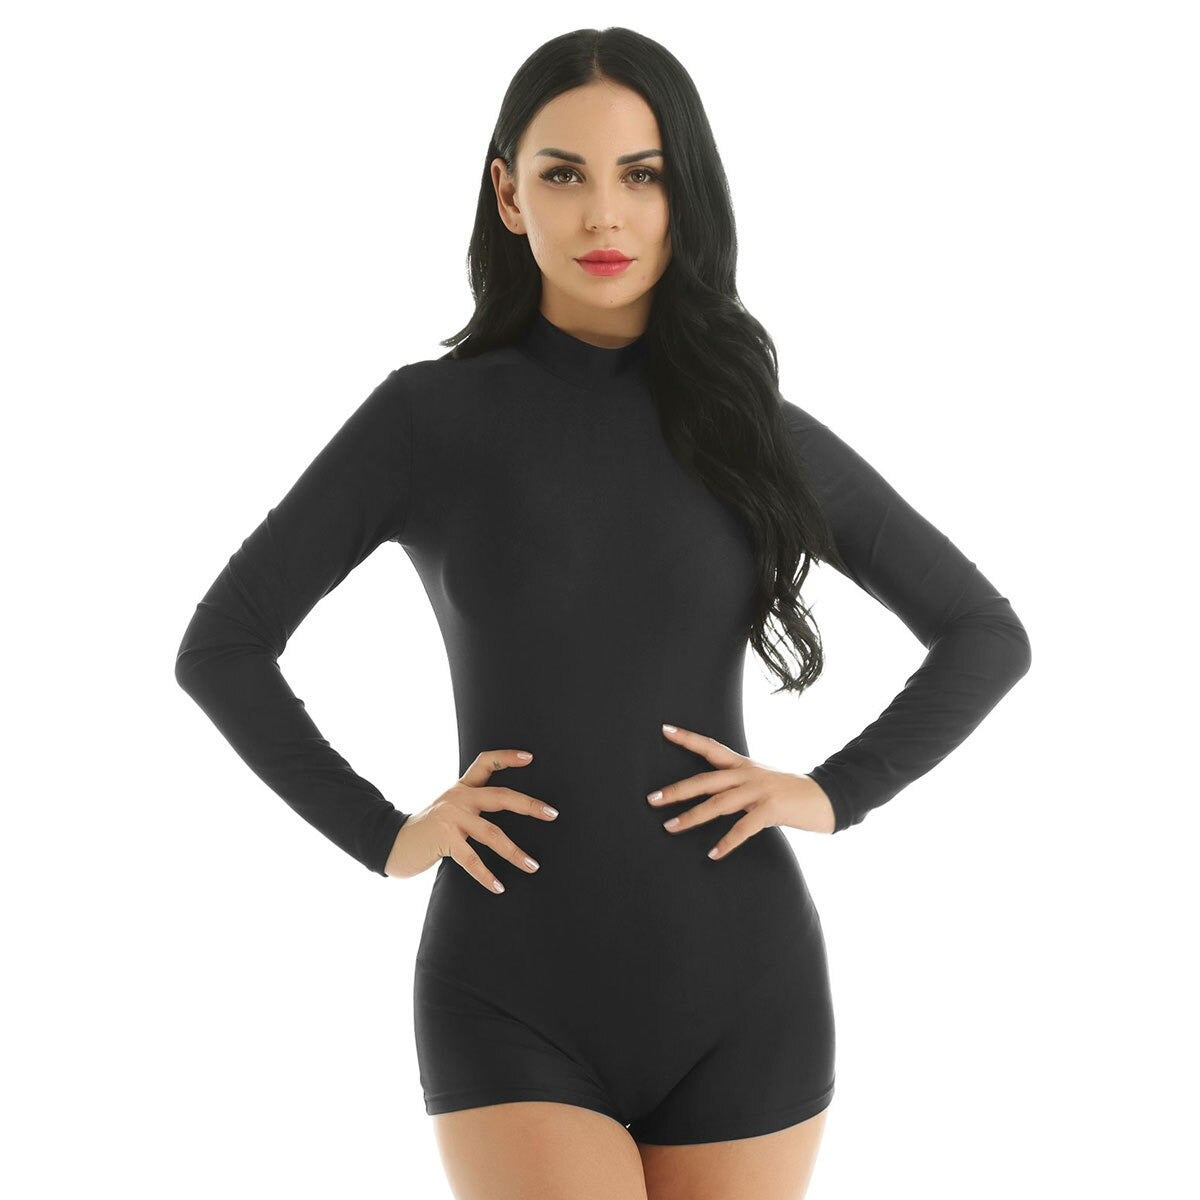 Stretchy Bodysuit for Rock Chick / Black Jumpsuit / Alternative Style Romper - HARD'N'HEAVY